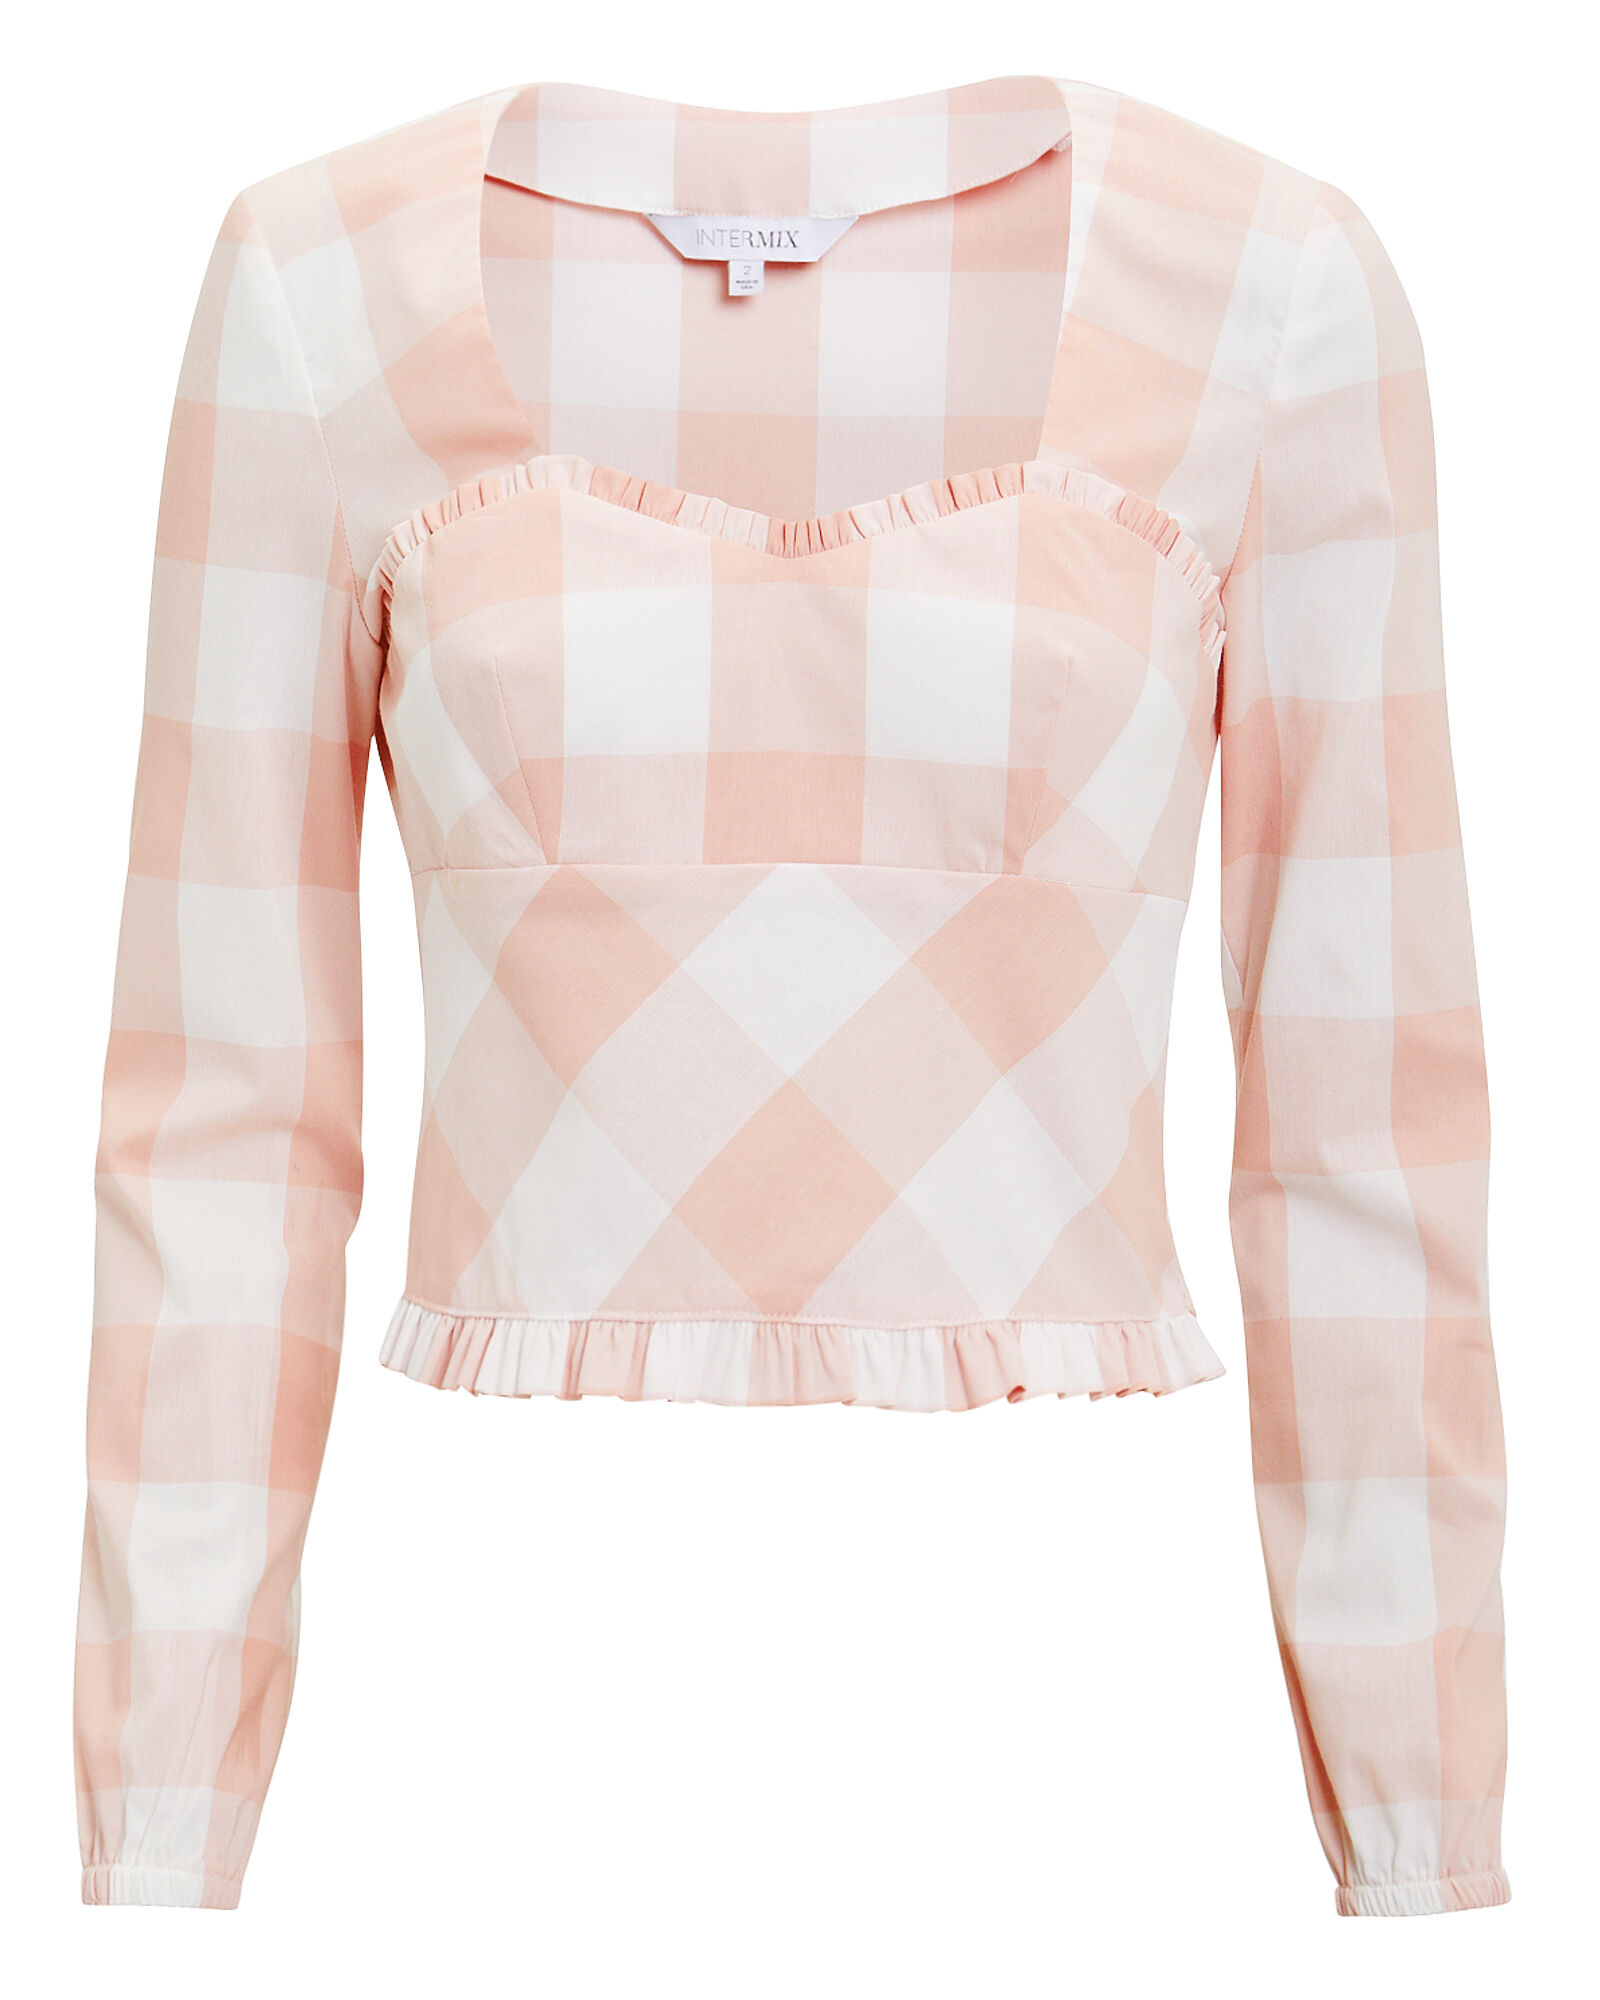 Stefania Gingham Top, PINK, hi-res